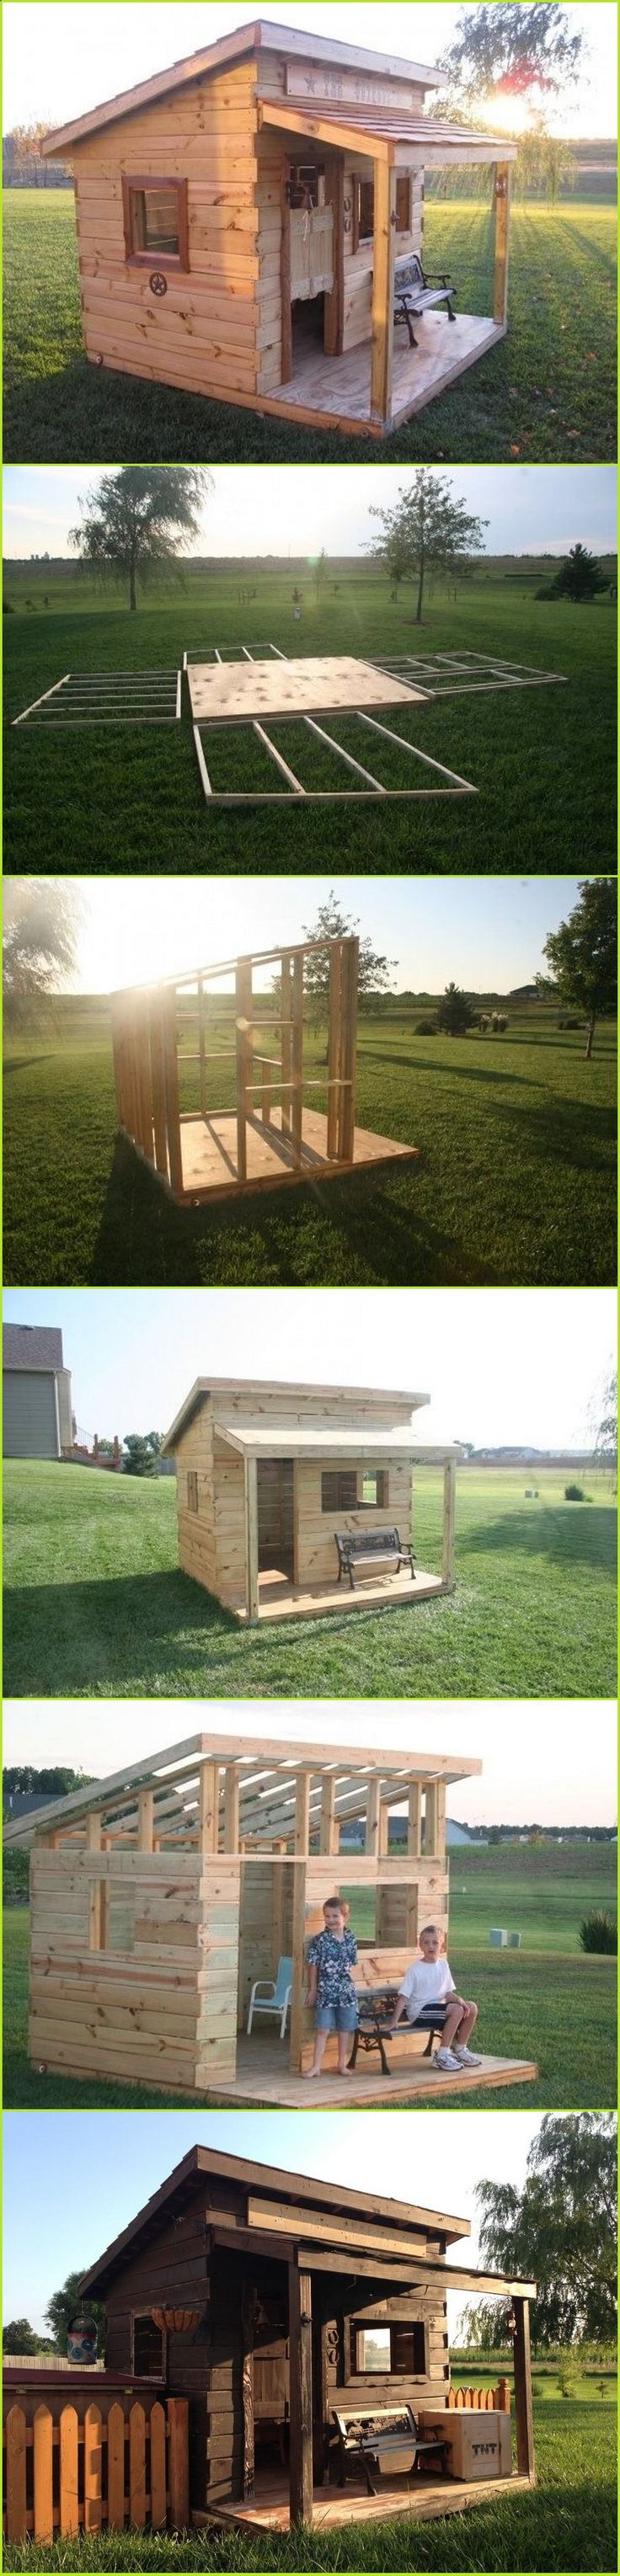 DIY Kids Fort which could be readily altered to make a nice LARP or Ren Faire building.